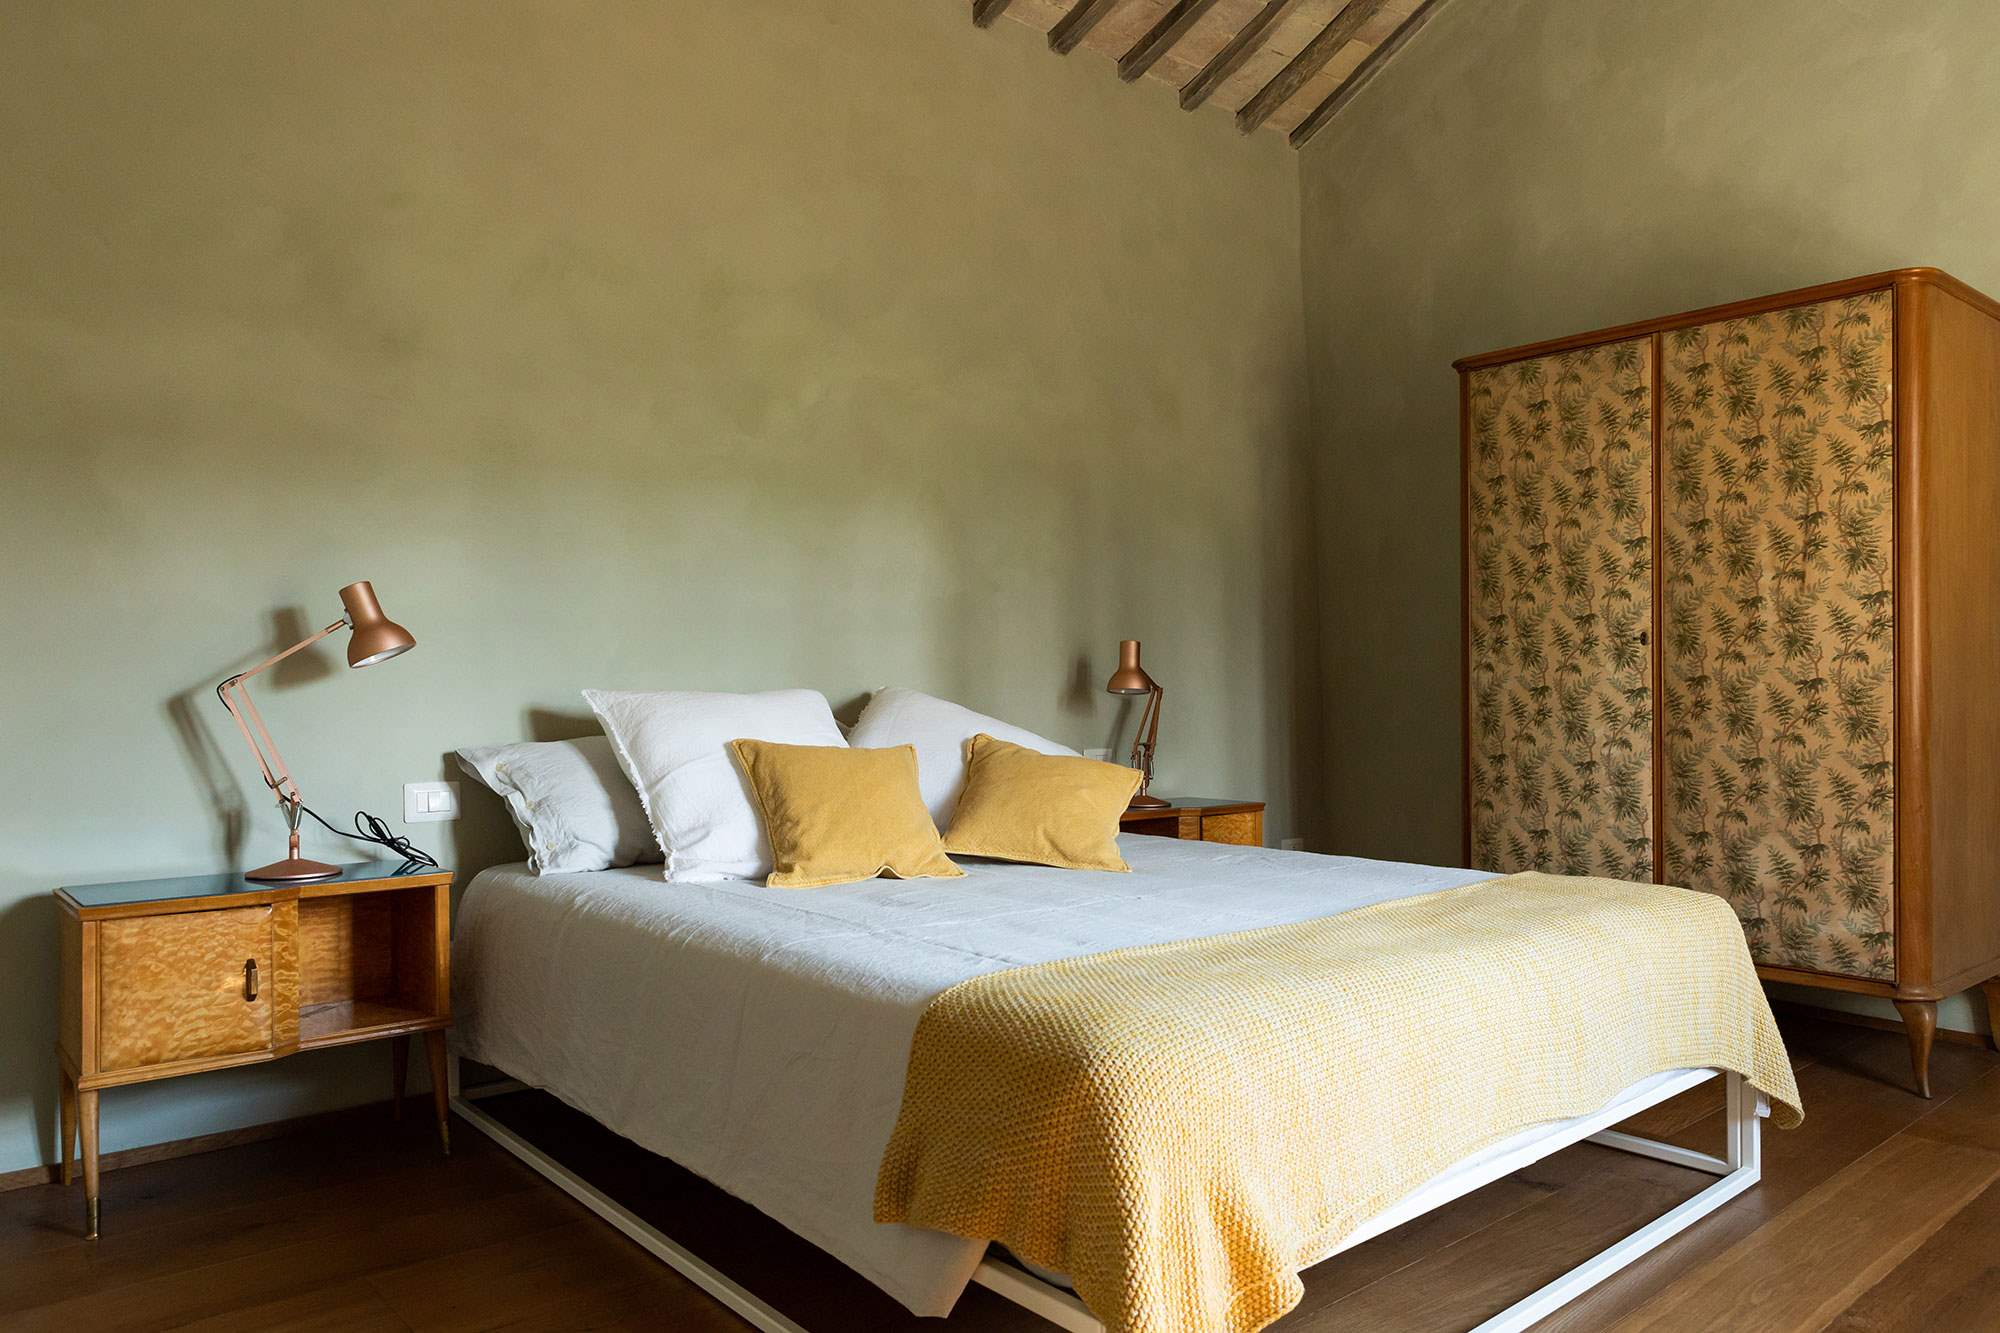 Villa Lecchi, 5 bedroom villa in Chianti & Countryside, Tuscany Photo #14